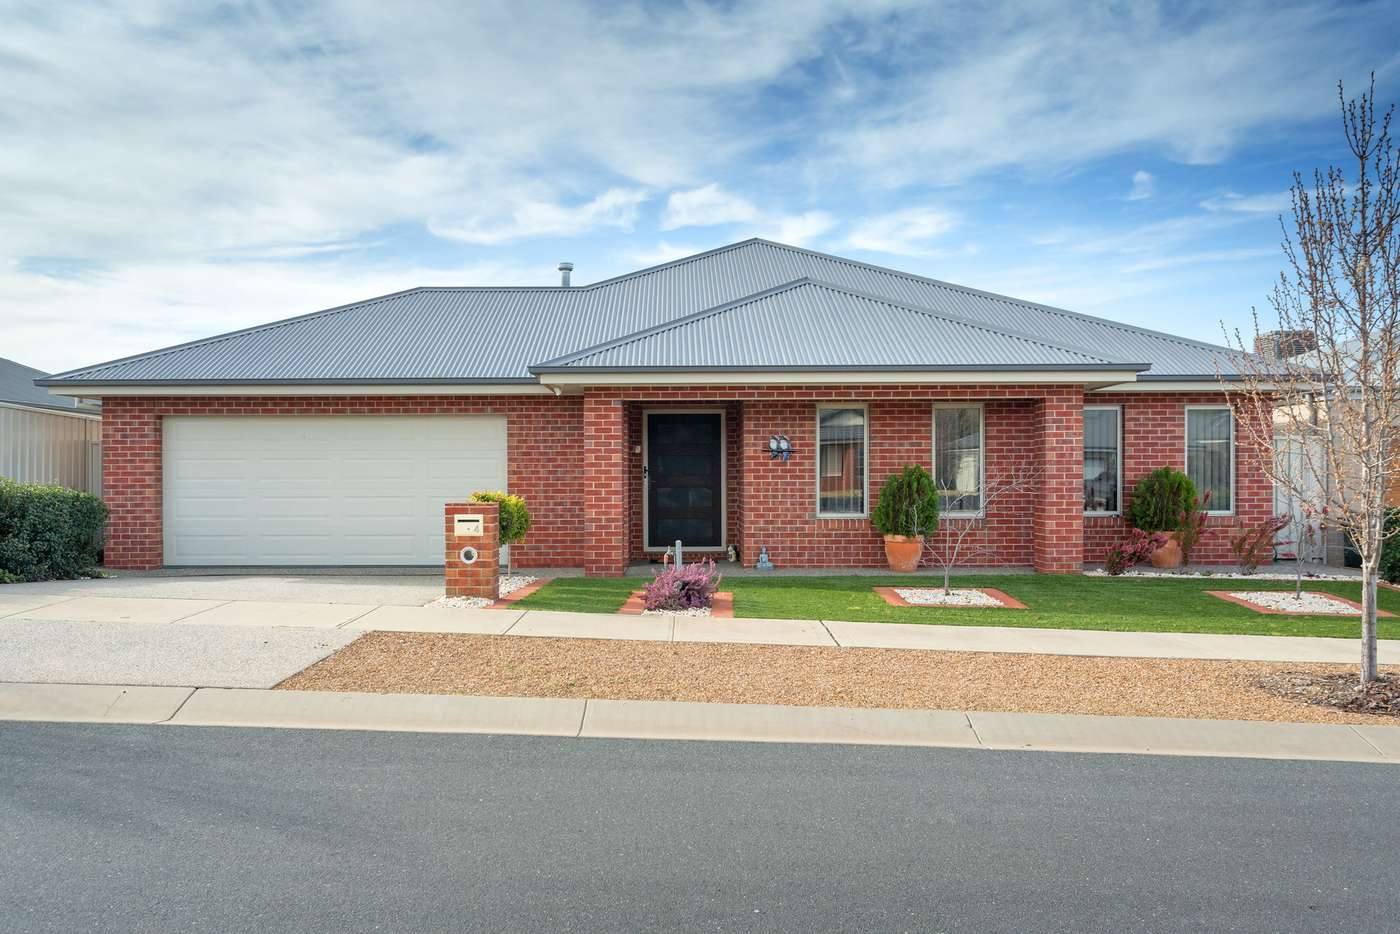 Main view of Homely house listing, 4 Gillman Terrace, Wodonga VIC 3690